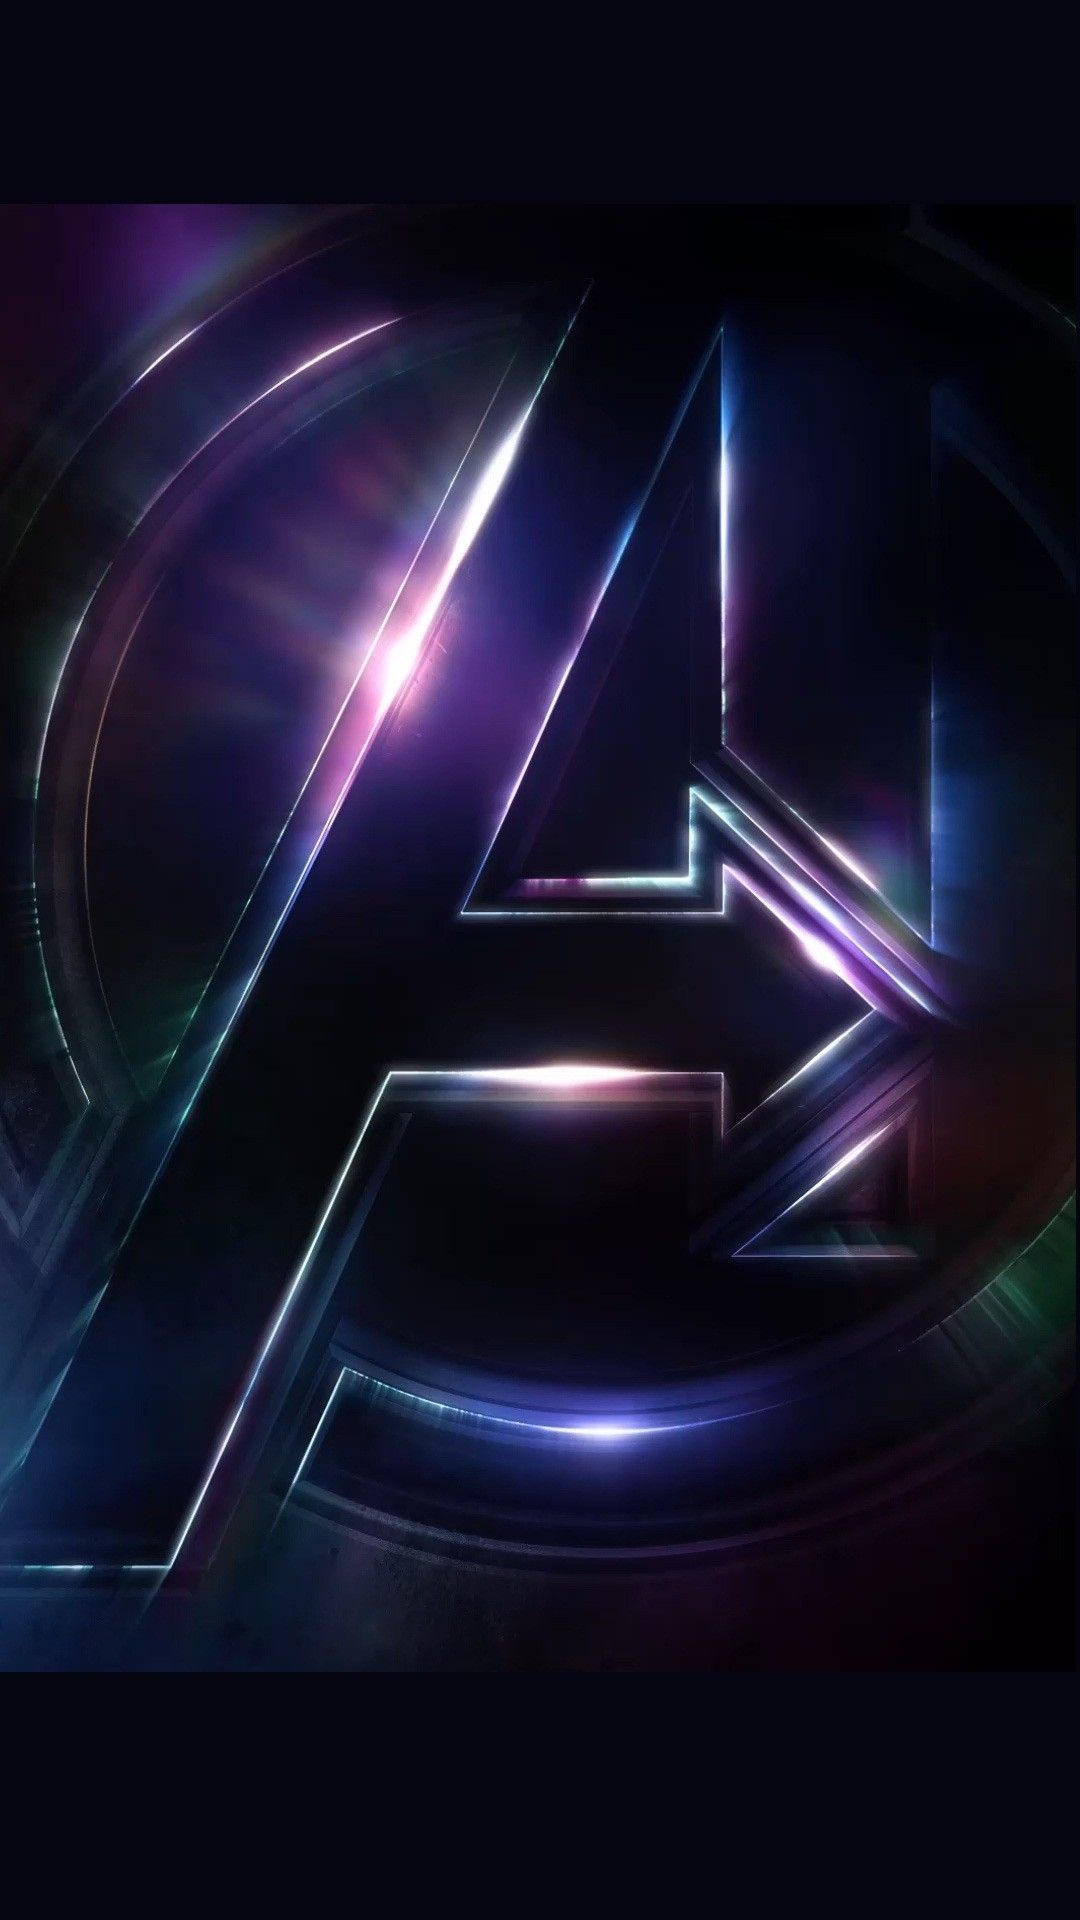 Avengers Infinity War Android Wallpaper   Best Android Wallpapers 1080x1920